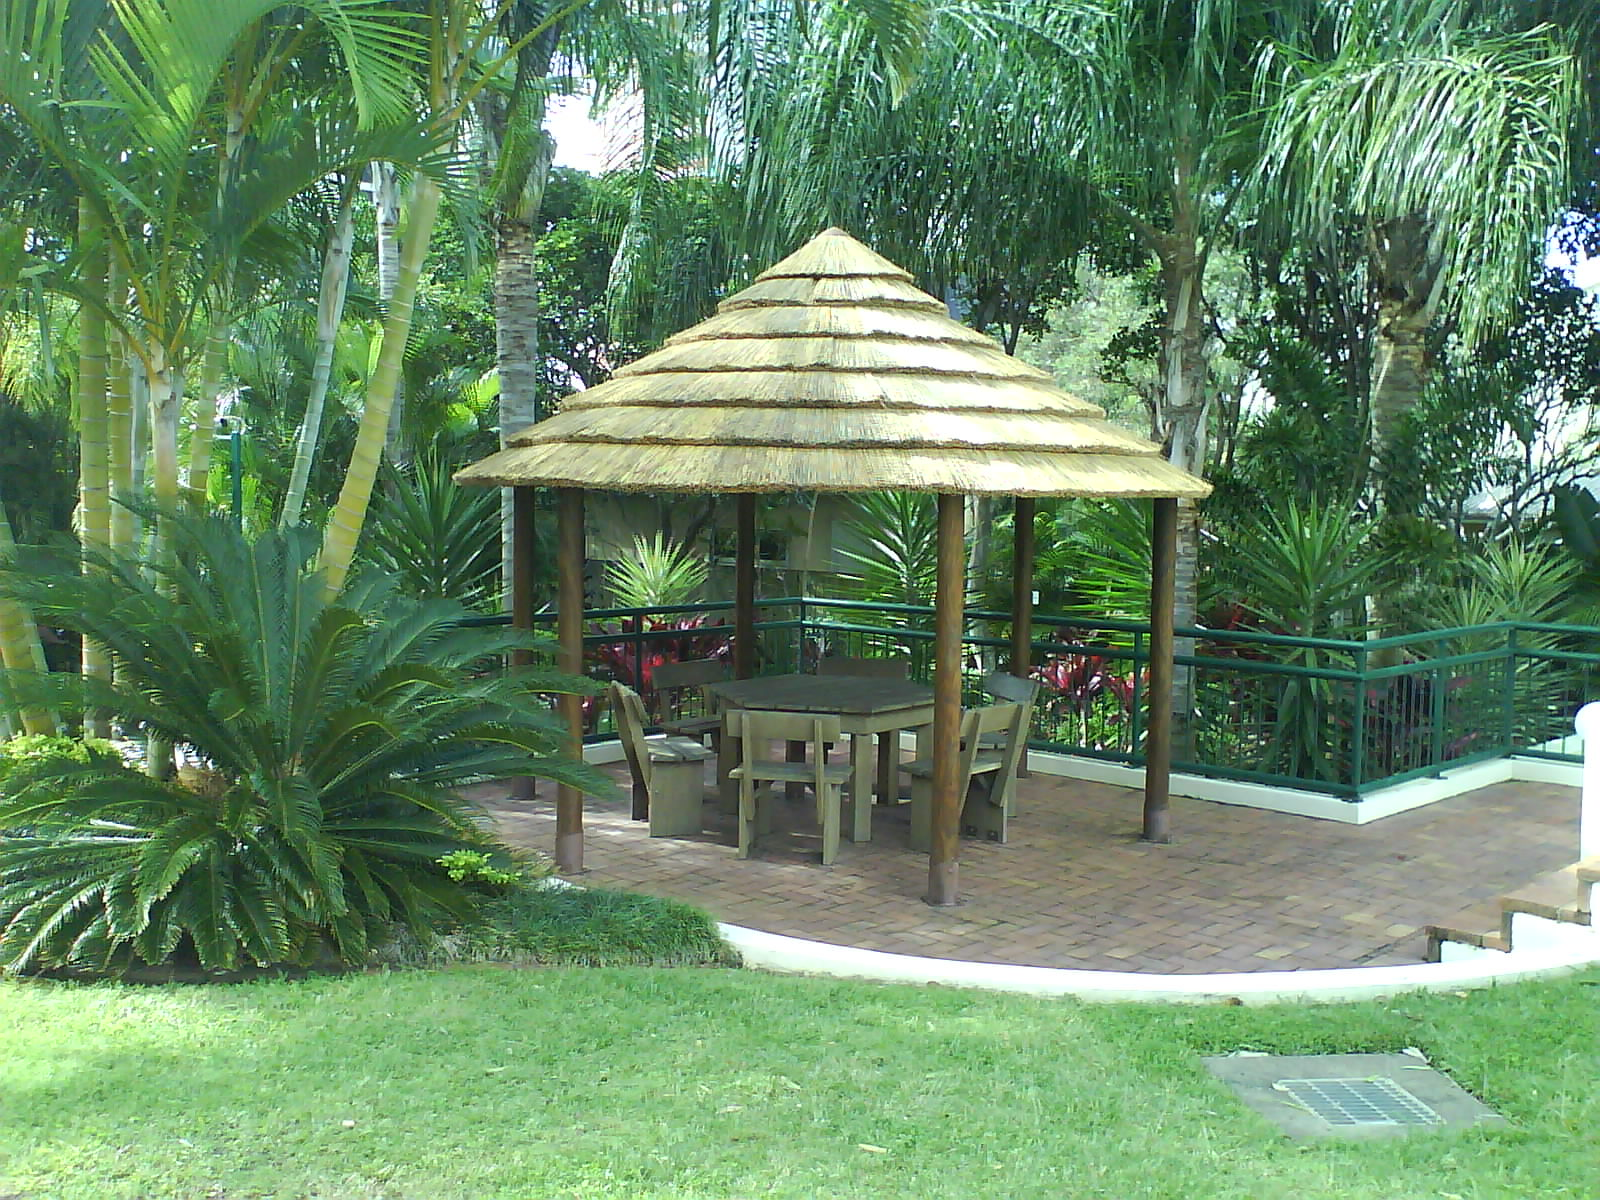 African Cape Reed Gazebo